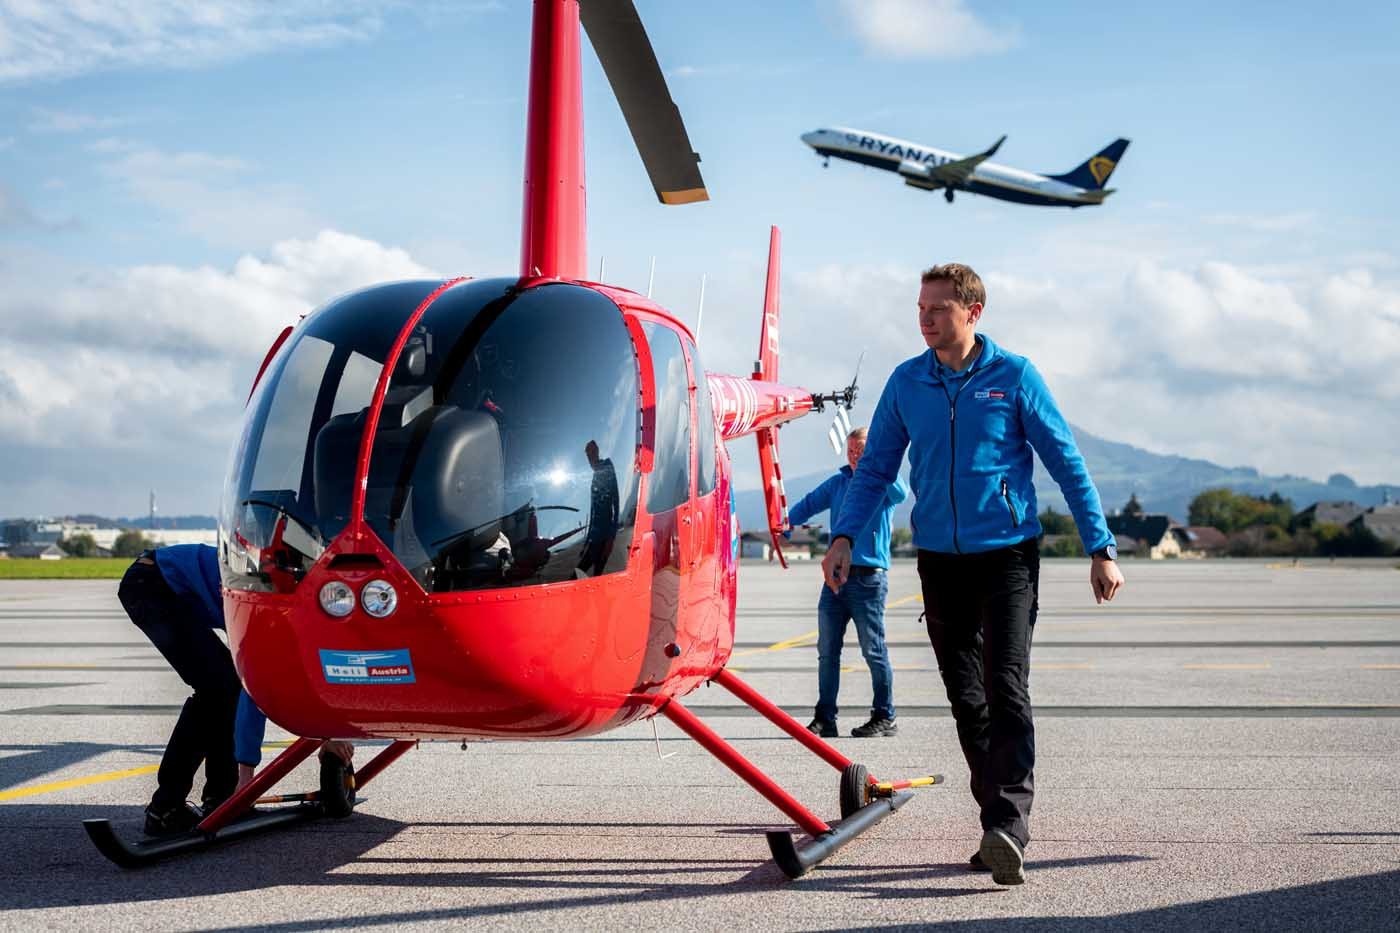 Training at Heli Austria Flight Academy